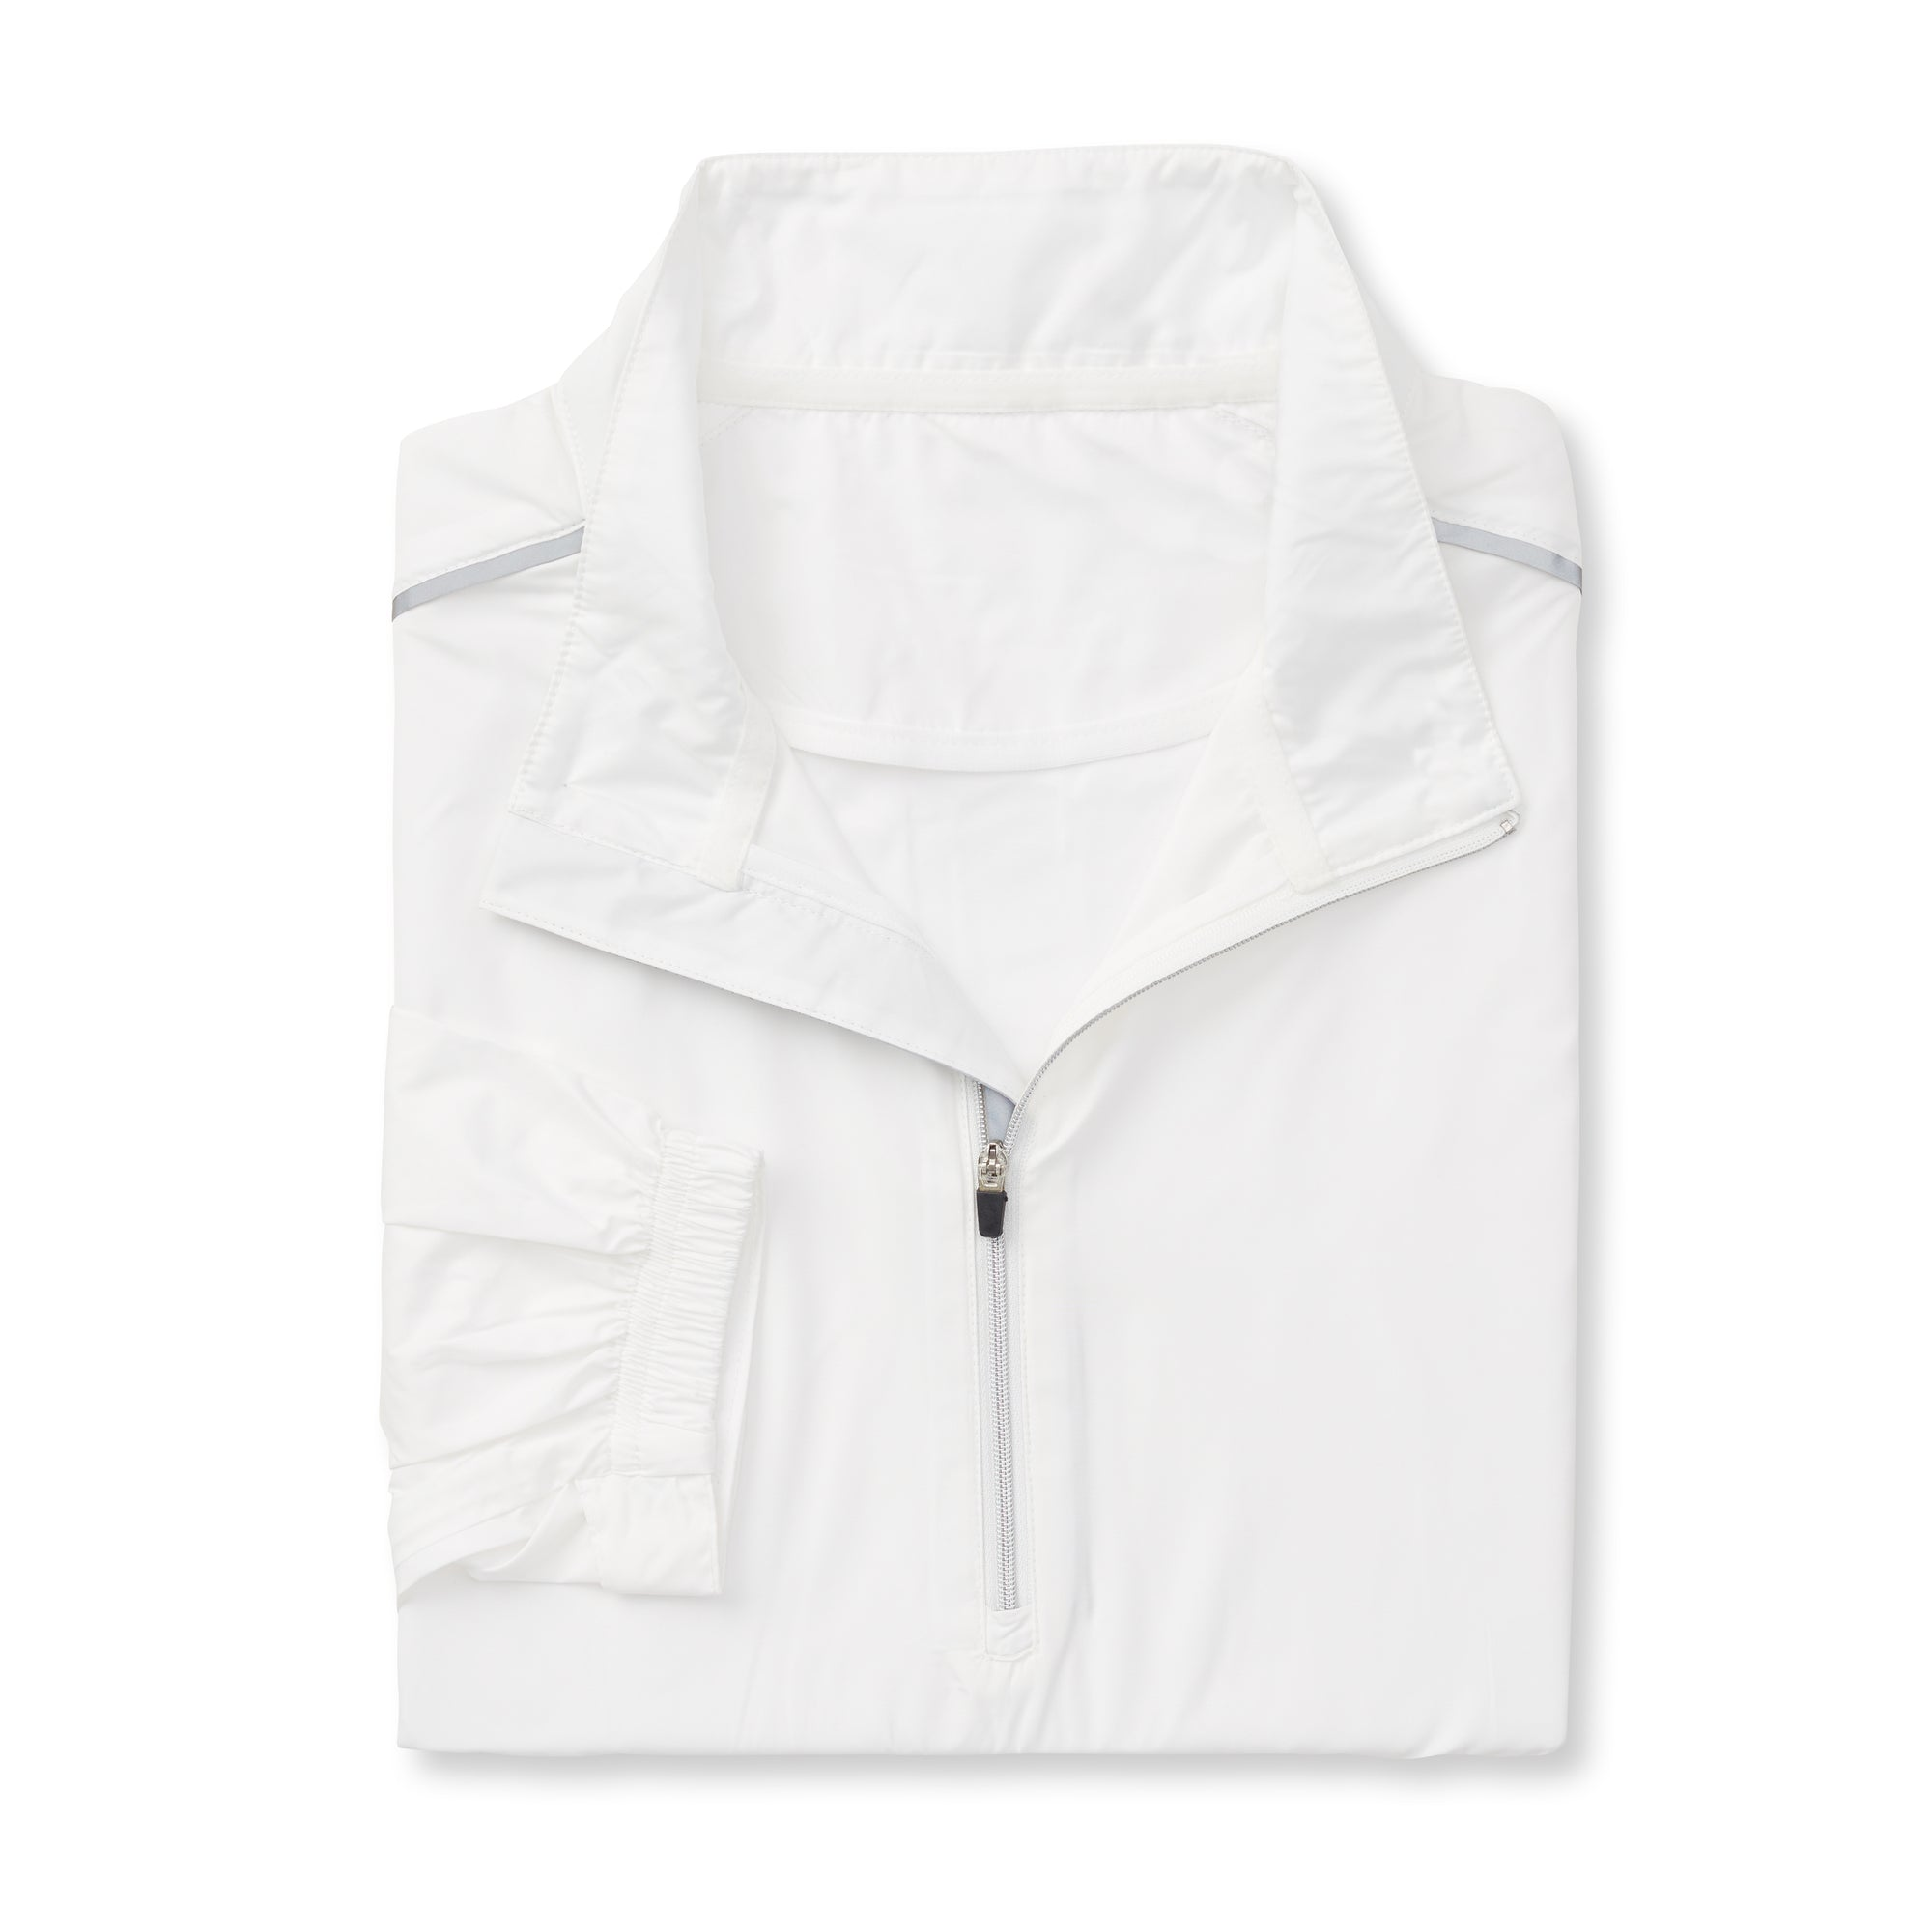 THE AVIATOR HALF ZIP TEC WINDWEAR - White